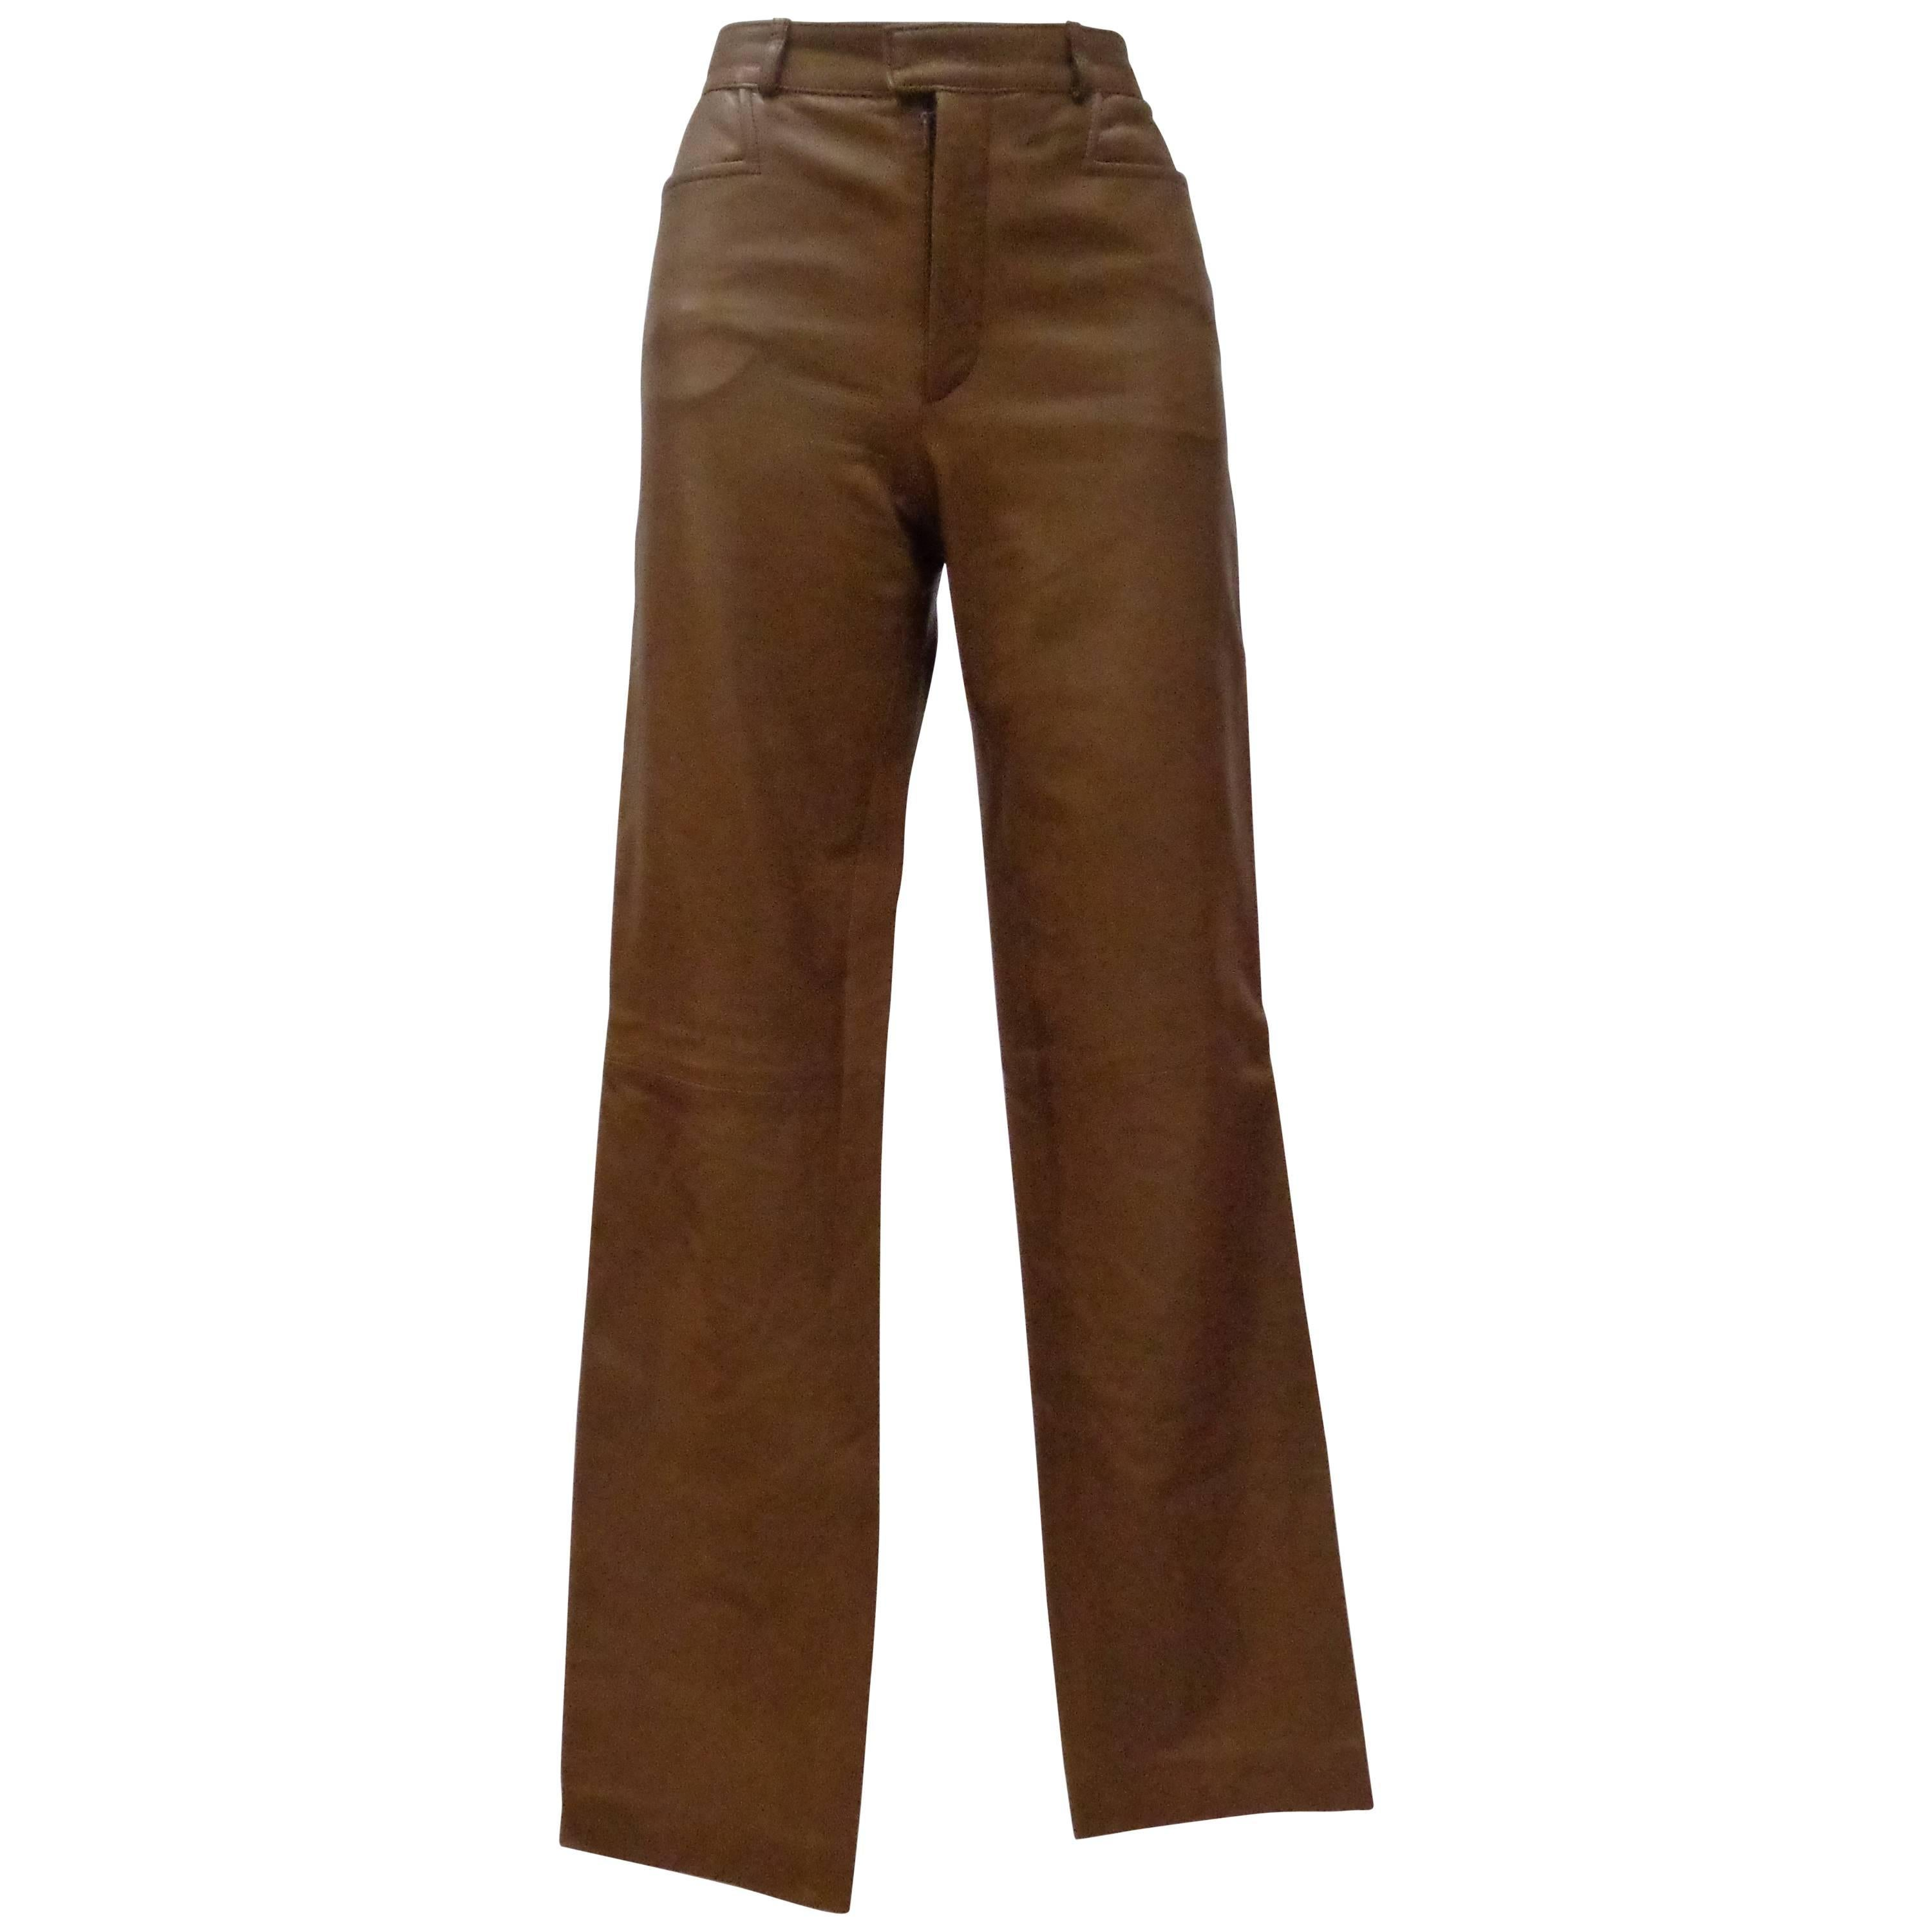 99bddb3b GUCCI by TOM FORD EMBROIDERED LEATHER MENS PANTS from the AD CAMPAGN For  Sale at 1stdibs